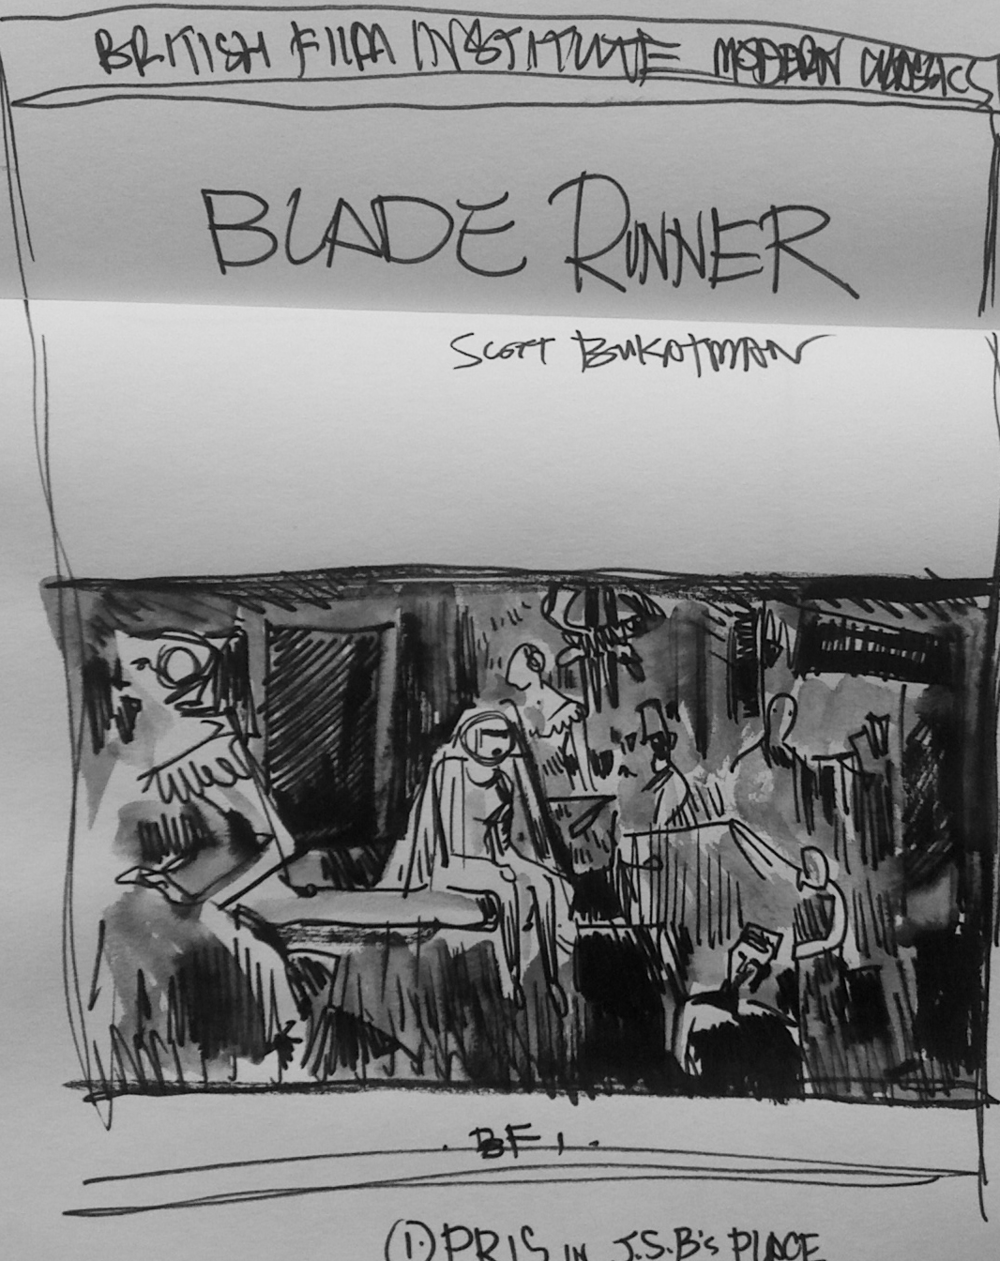 blade runner critical essay Comparing empathy in blade runner and slaughterhouse-five essay example frankenstein/ blade runner essay more about comparing empathy in.